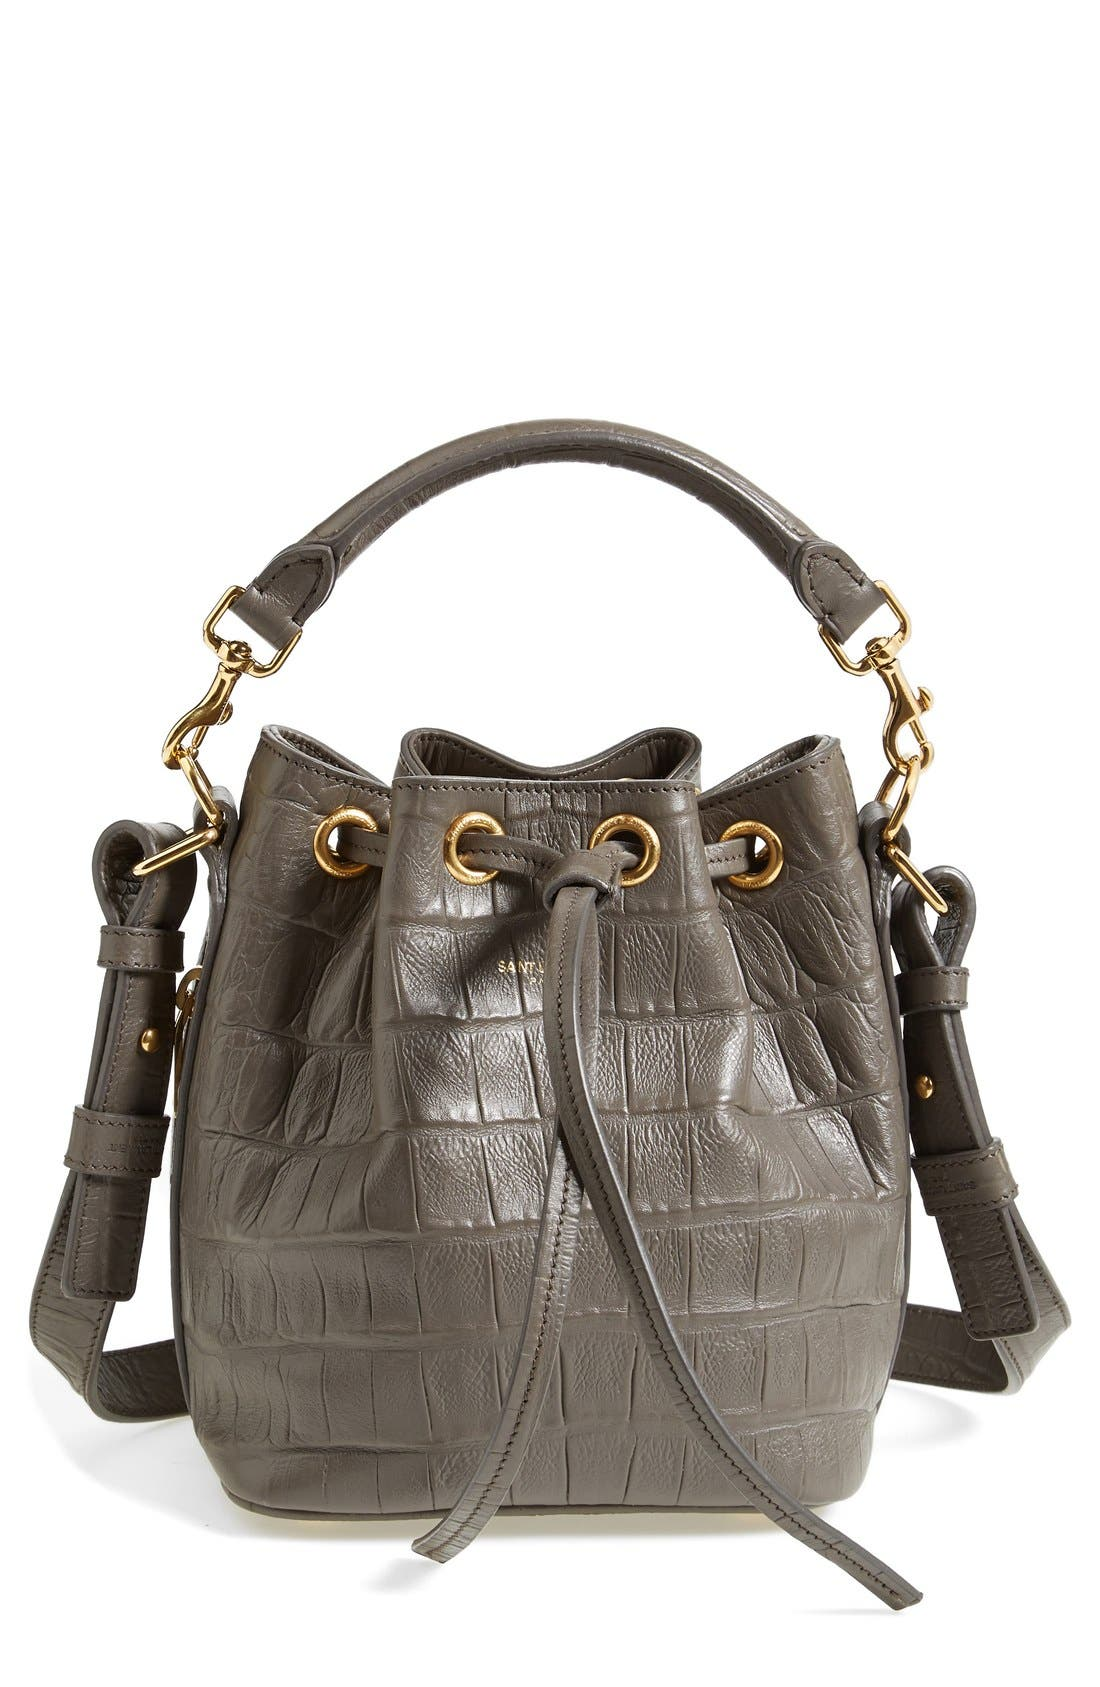 Main Image - Saint Laurent 'Small Seau' Croc Embossed Leather Bucket Bag